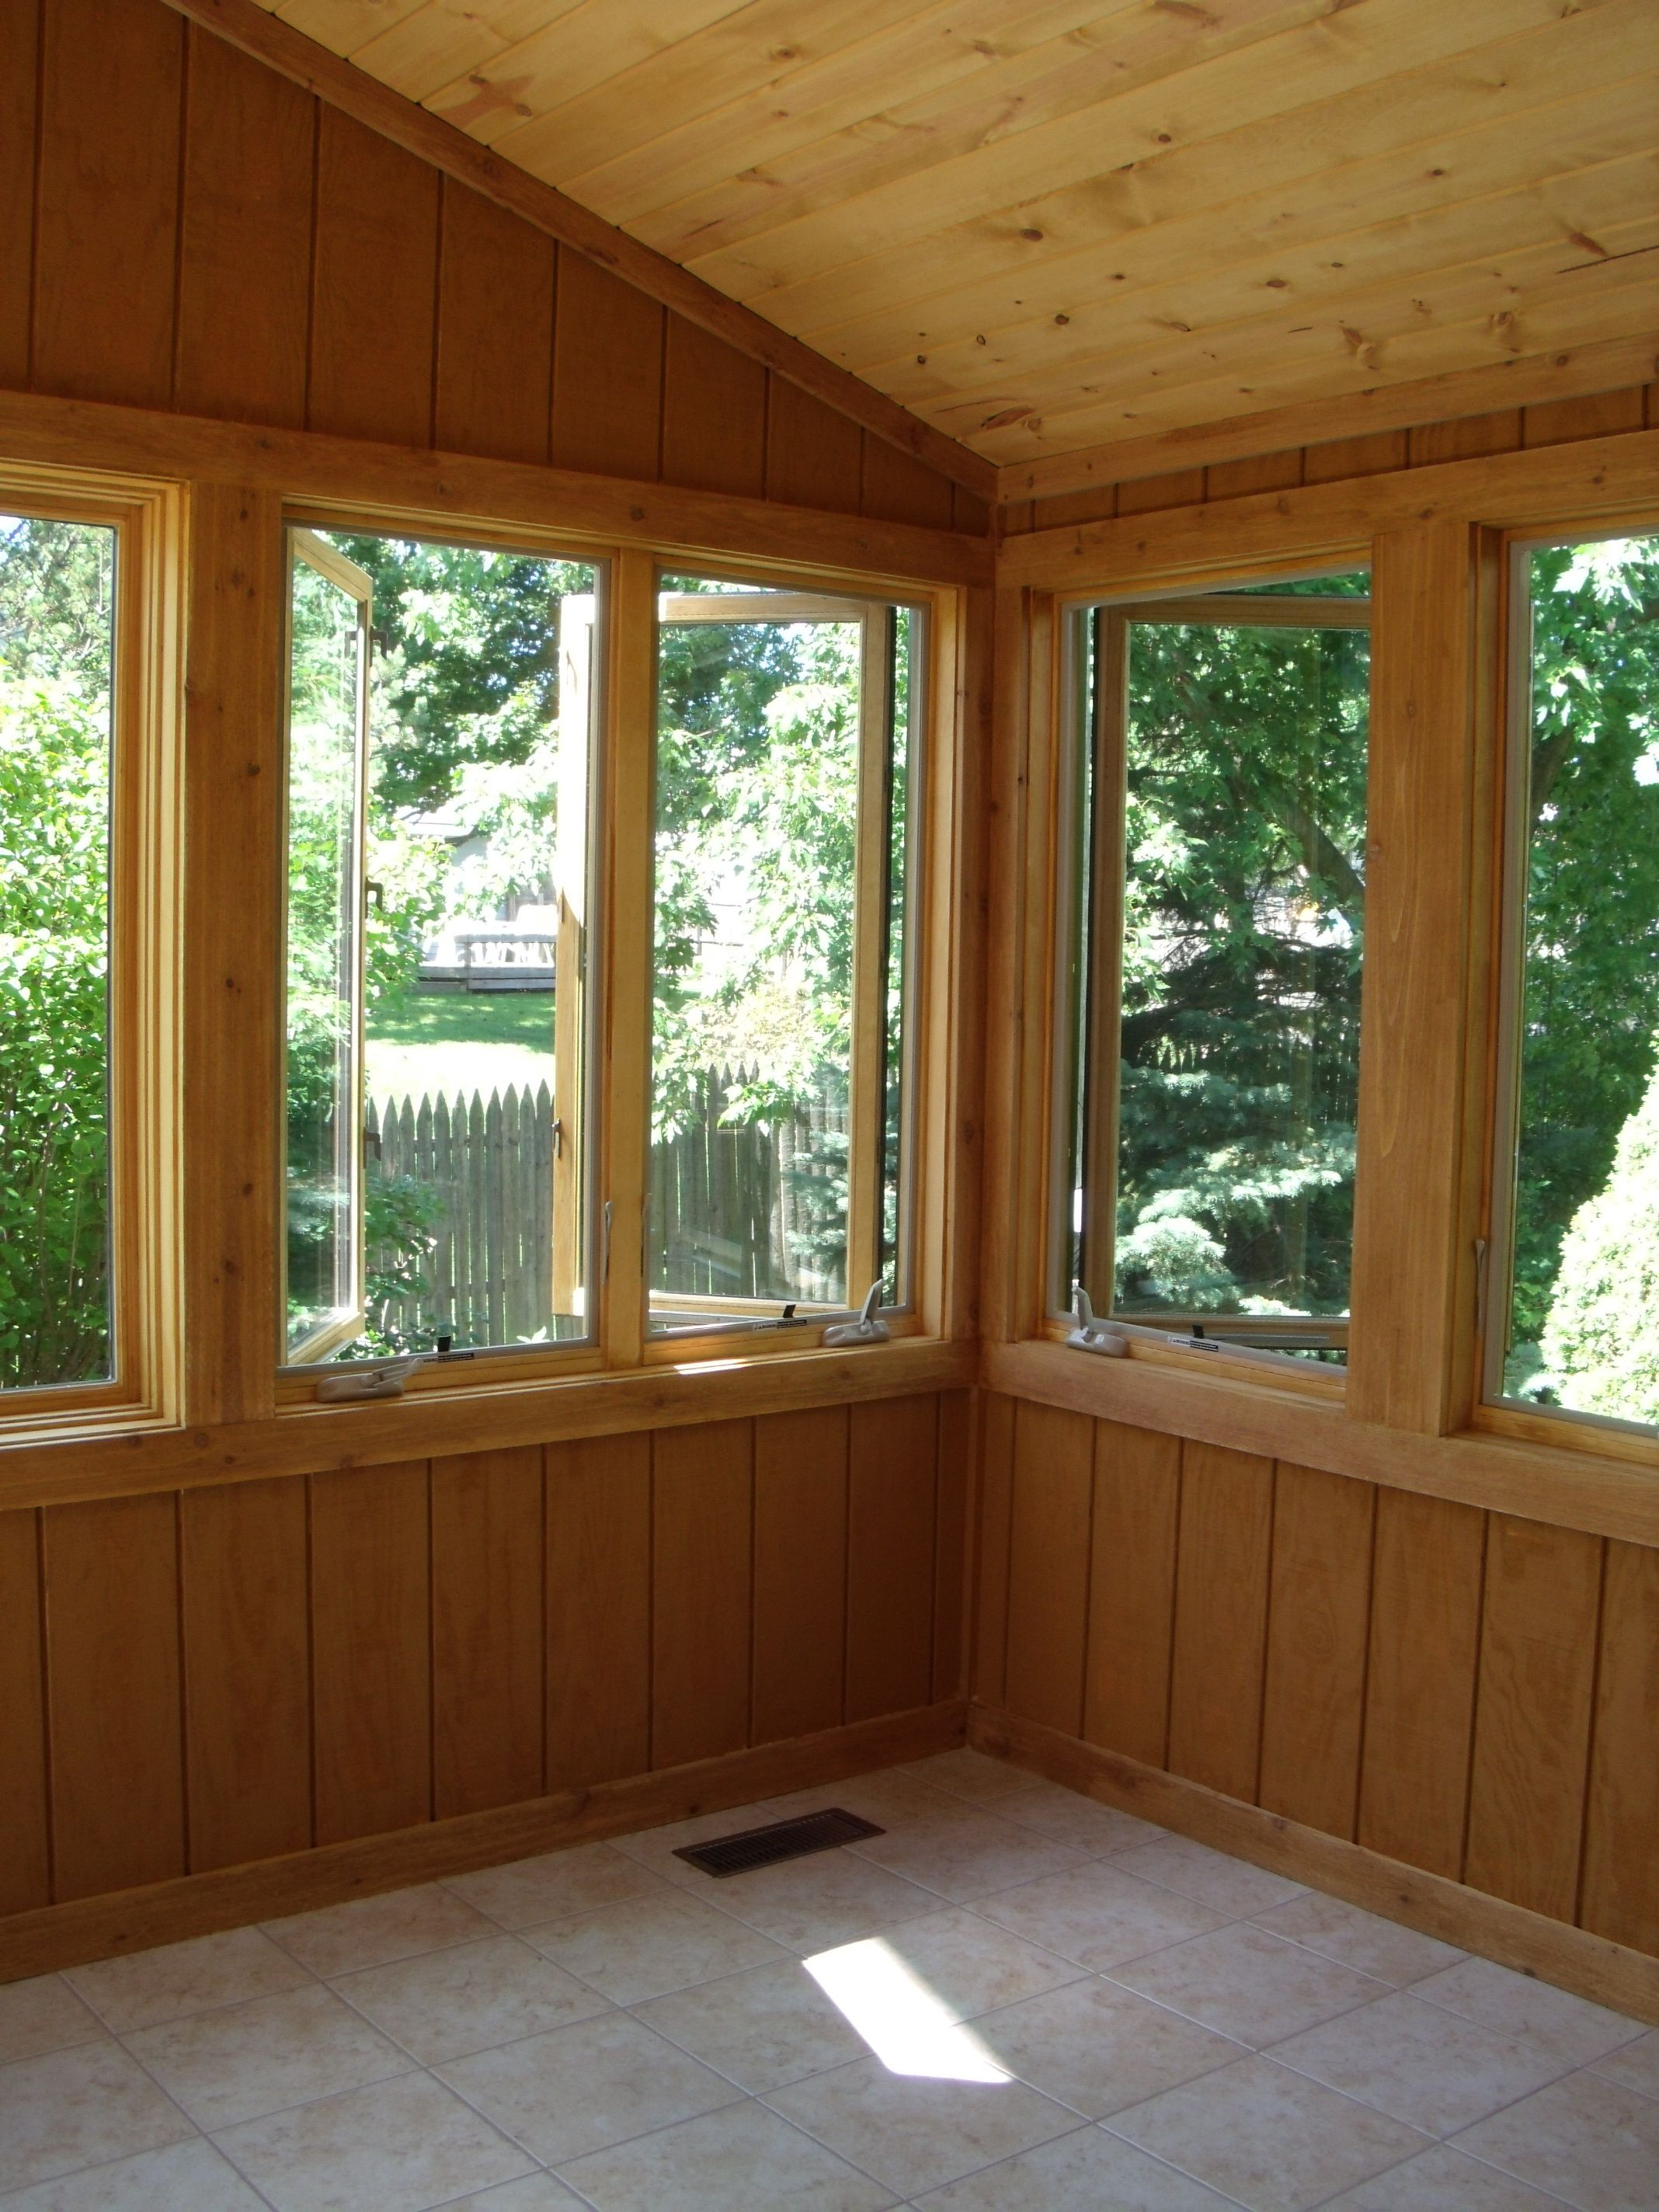 3 season porch window ideas  finished conversion from screened porch to sunroom  sunrooms